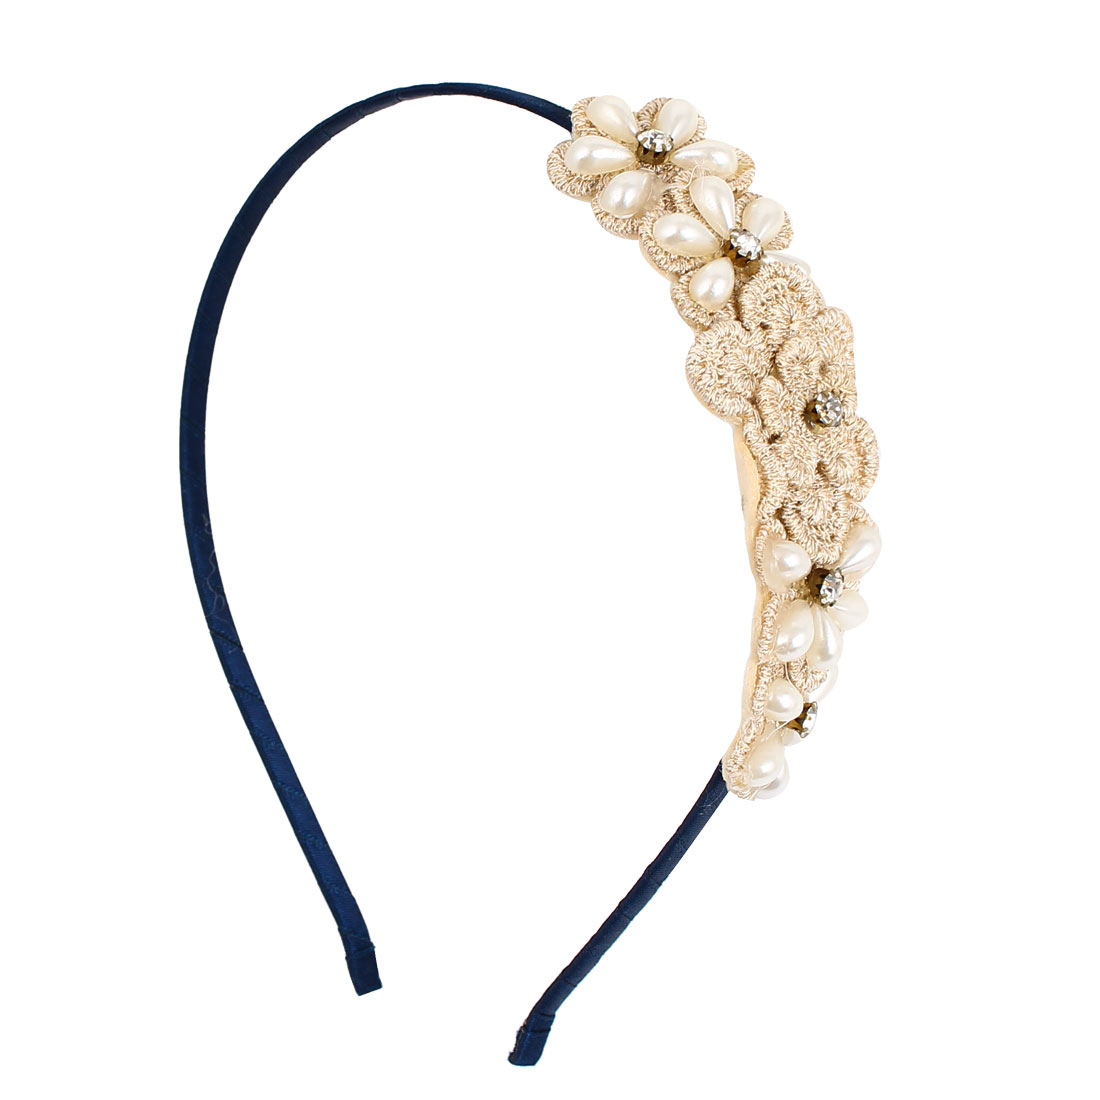 Flower Imitation Pearl Rhinestone Decor Fashion Hairband Headband Hair Hoop Beige Black